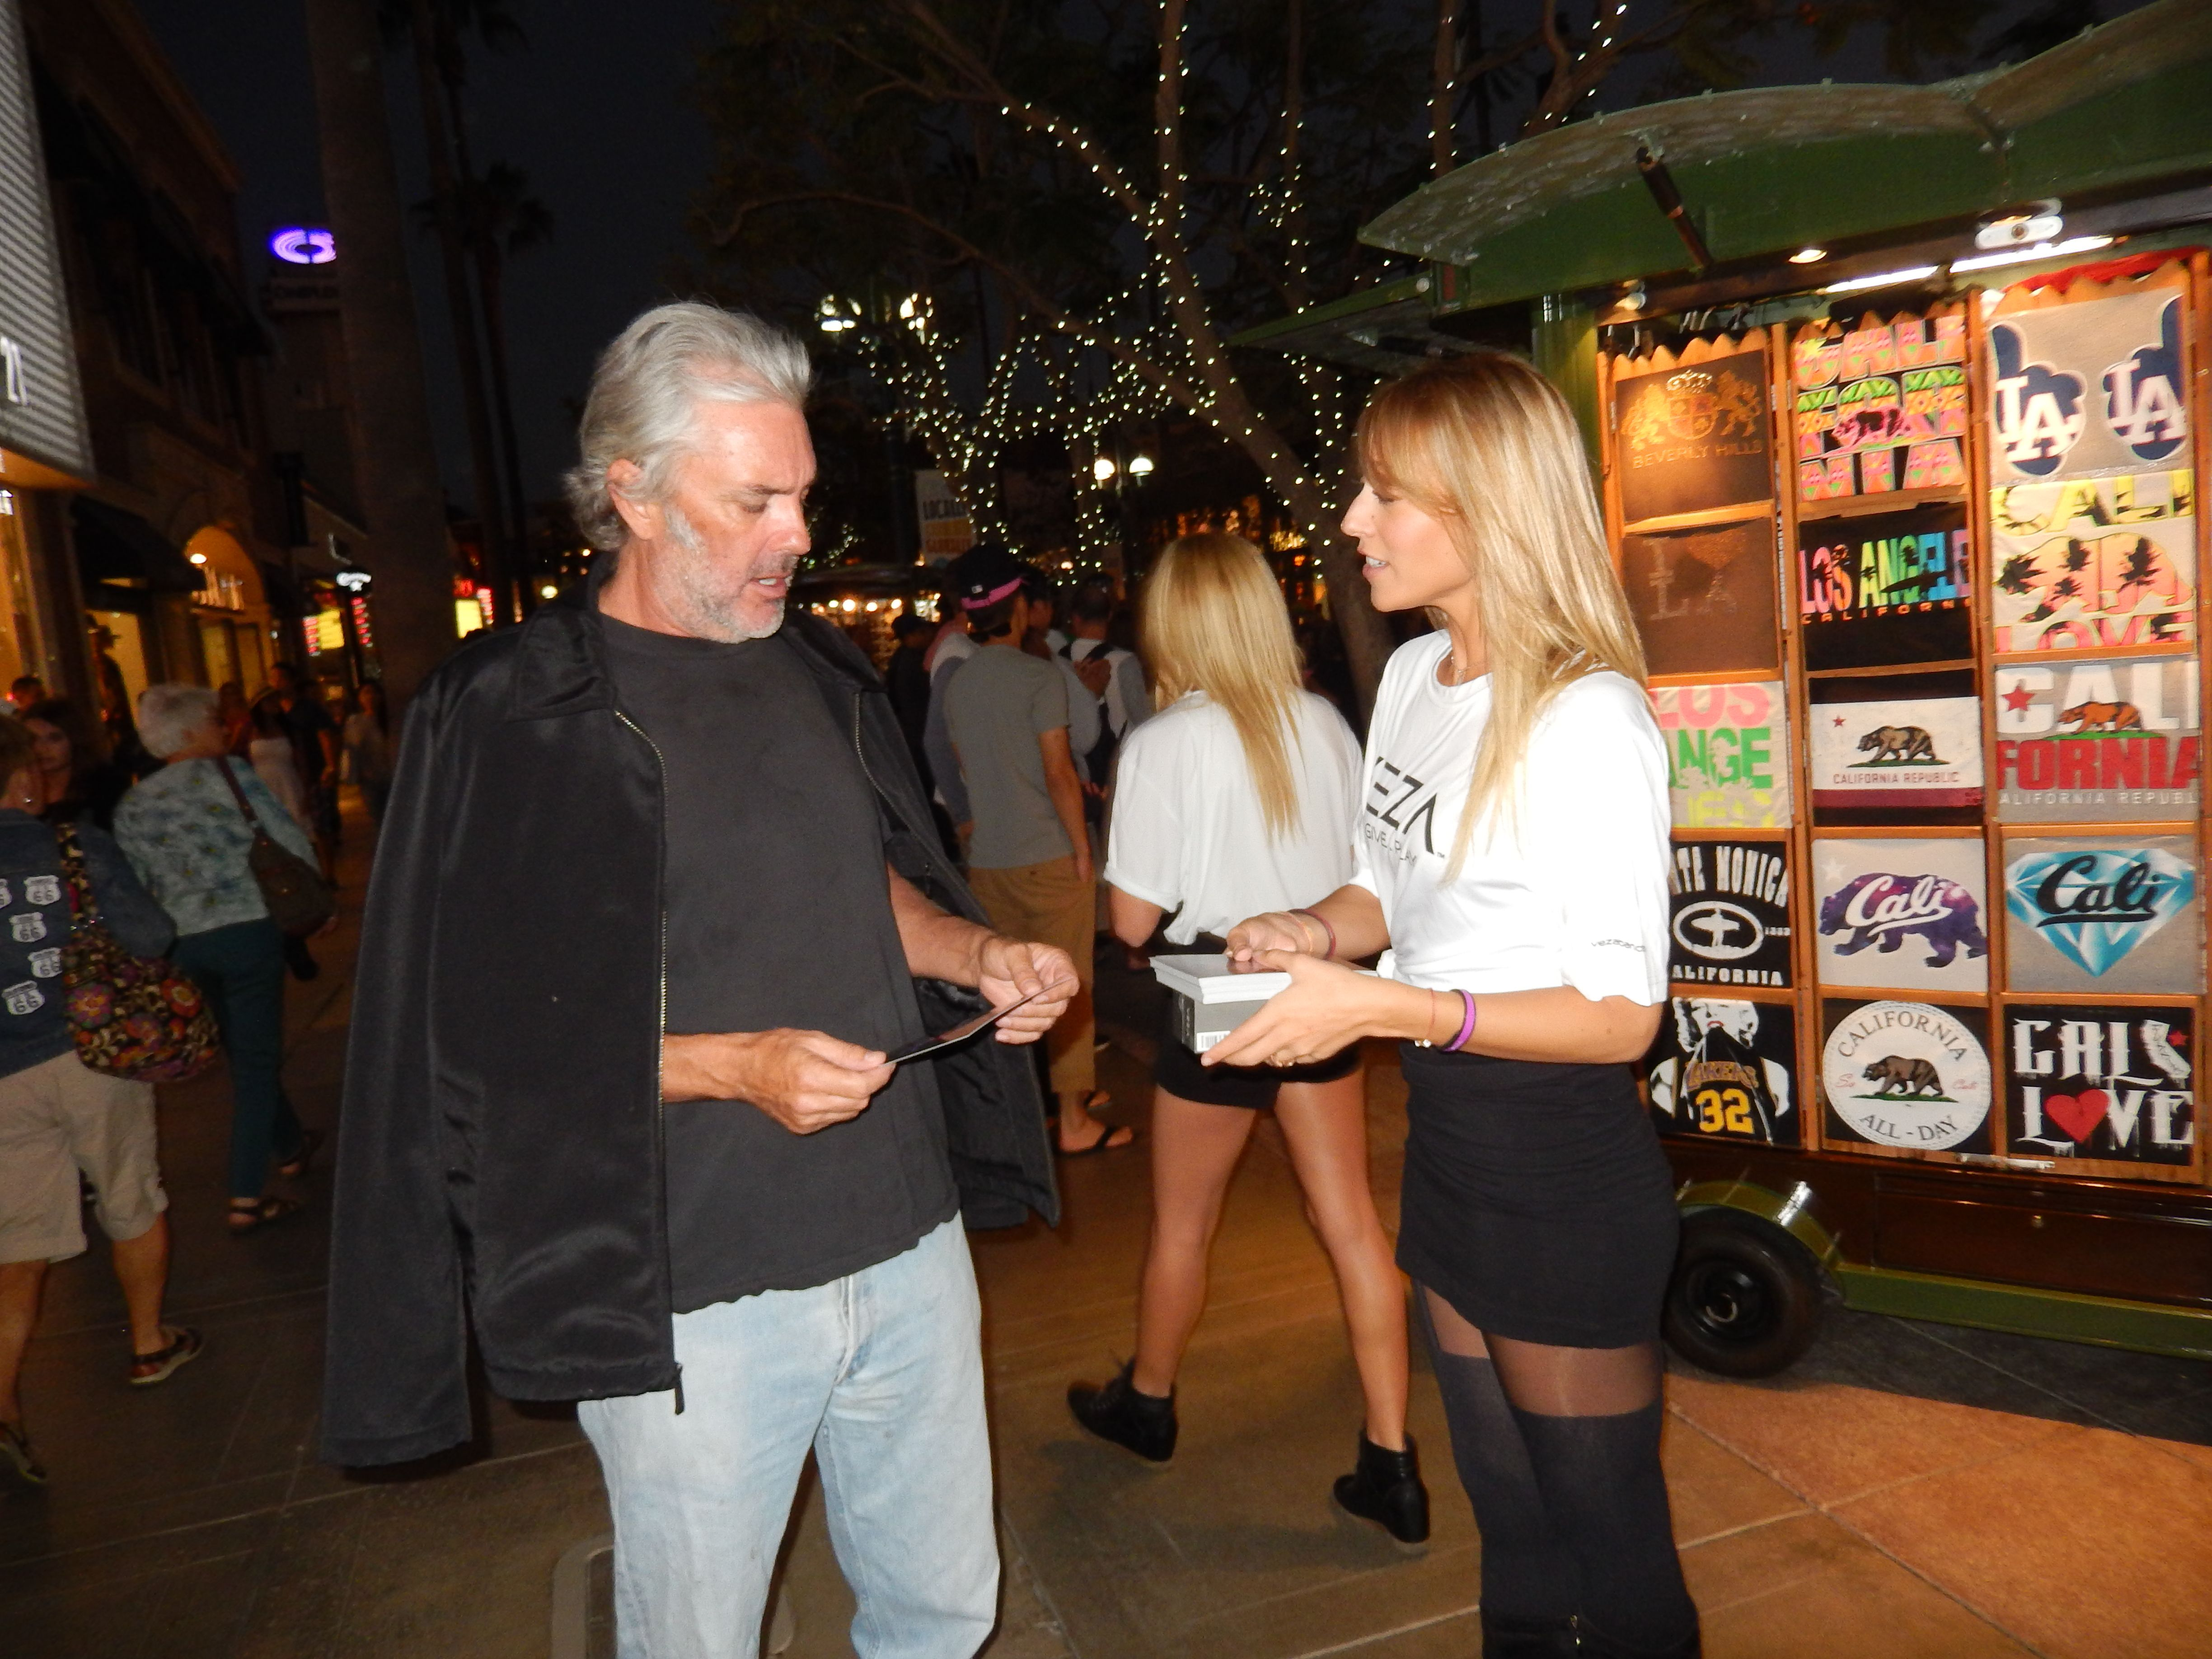 The #VezaGirls at the 3rd Street Promenade in Santa Monica teaching people about Veza Charity Wristbands. www.vezabands.com